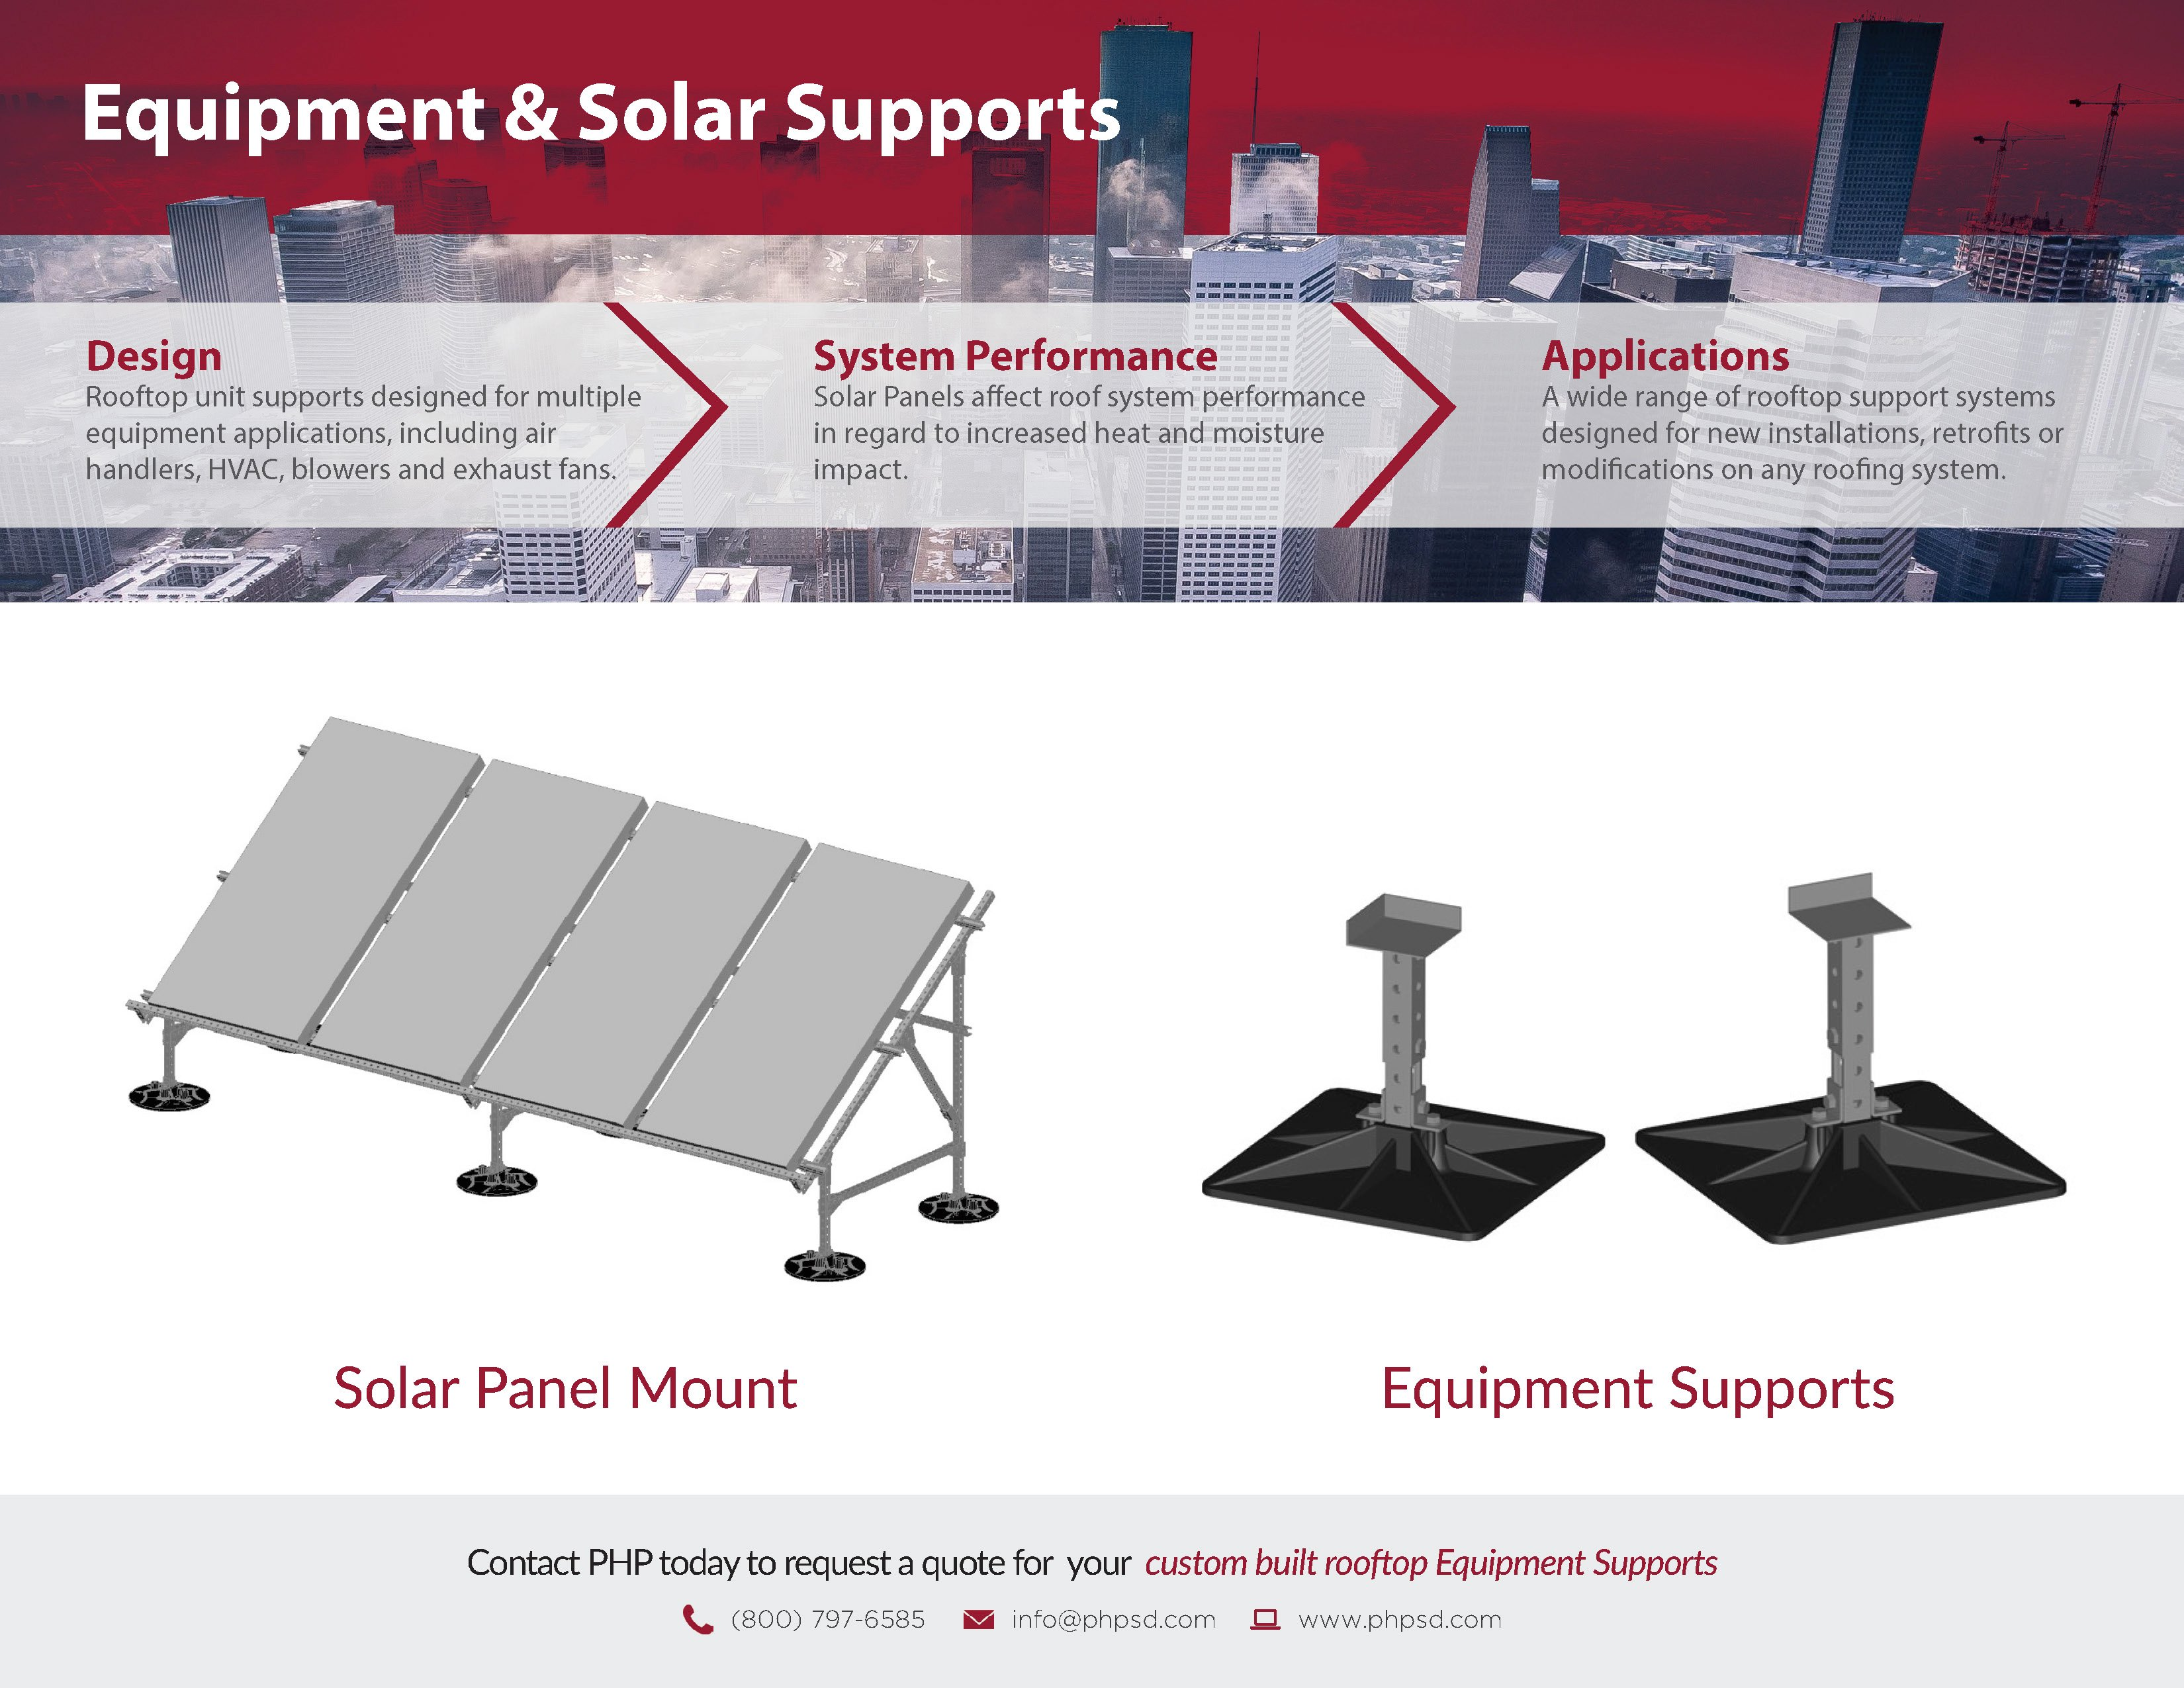 PHP Equipment & Solar Support Product Flyer